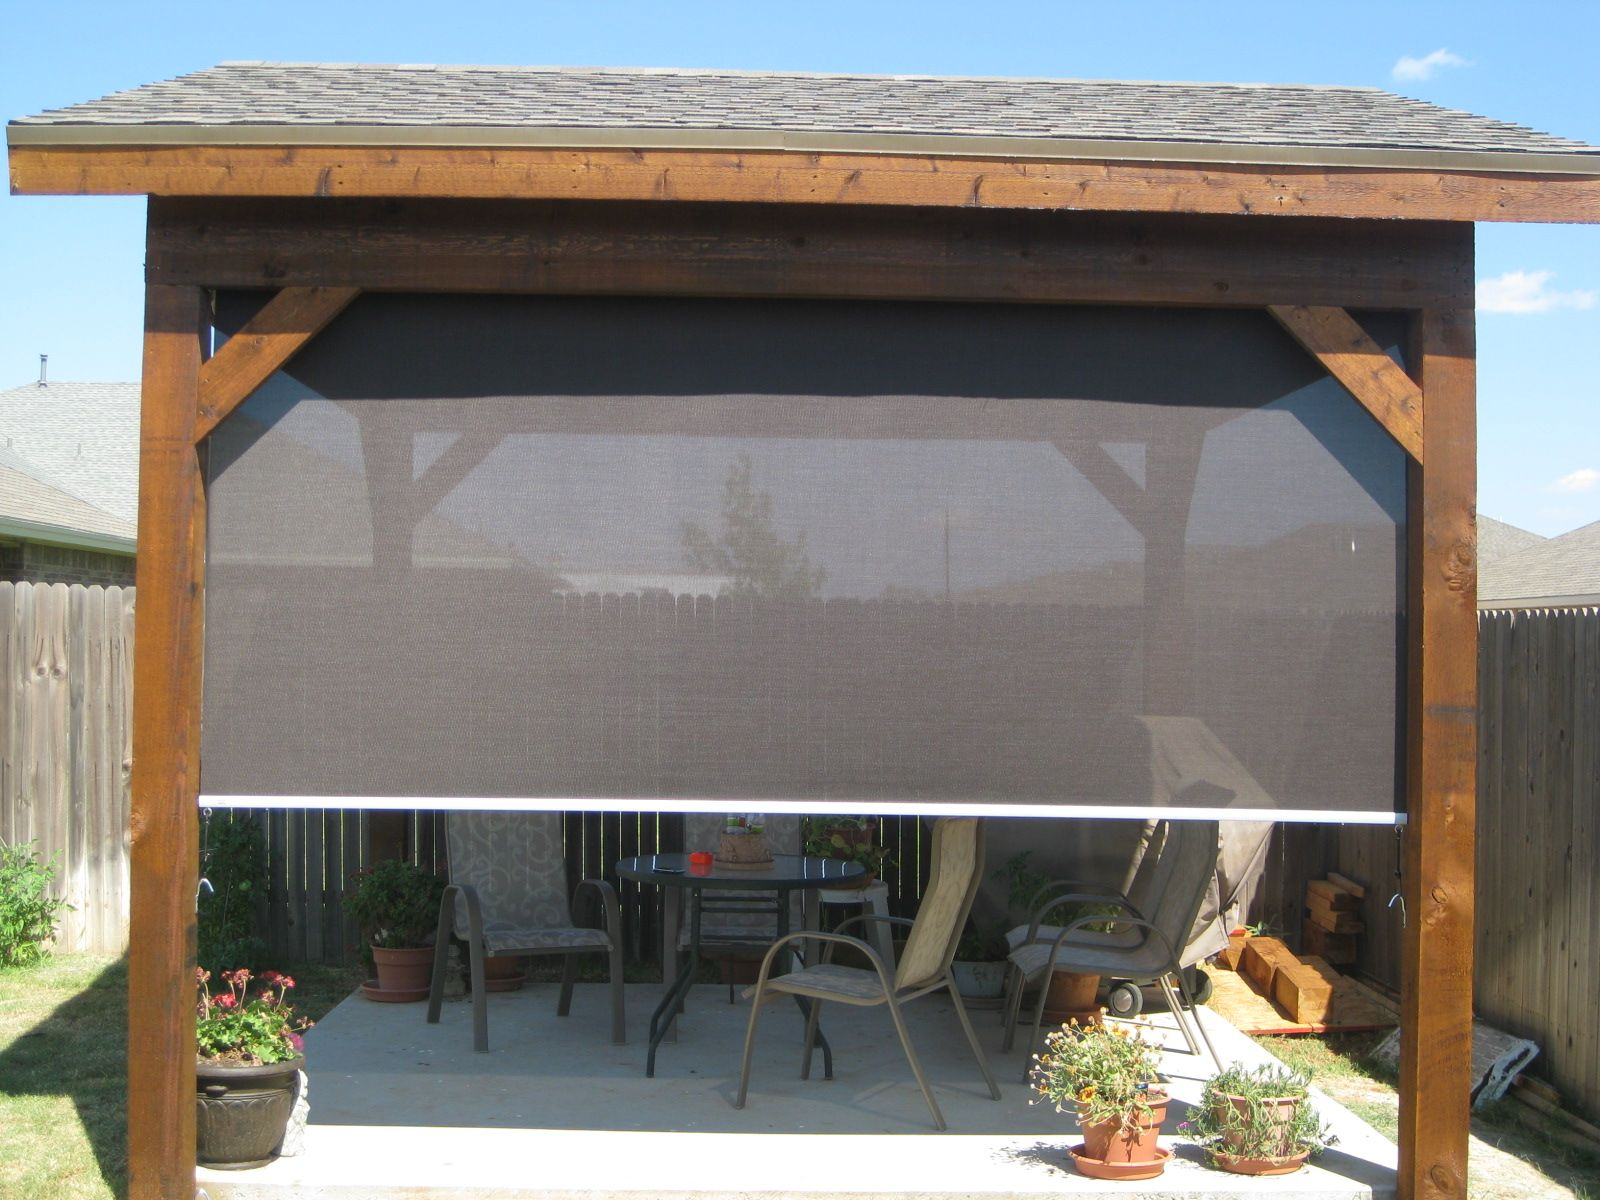 Ordinaire Home Blinds Shutters Roller Shades Patio Shades Solar Screens About  Throughout Size 1600 X 1200